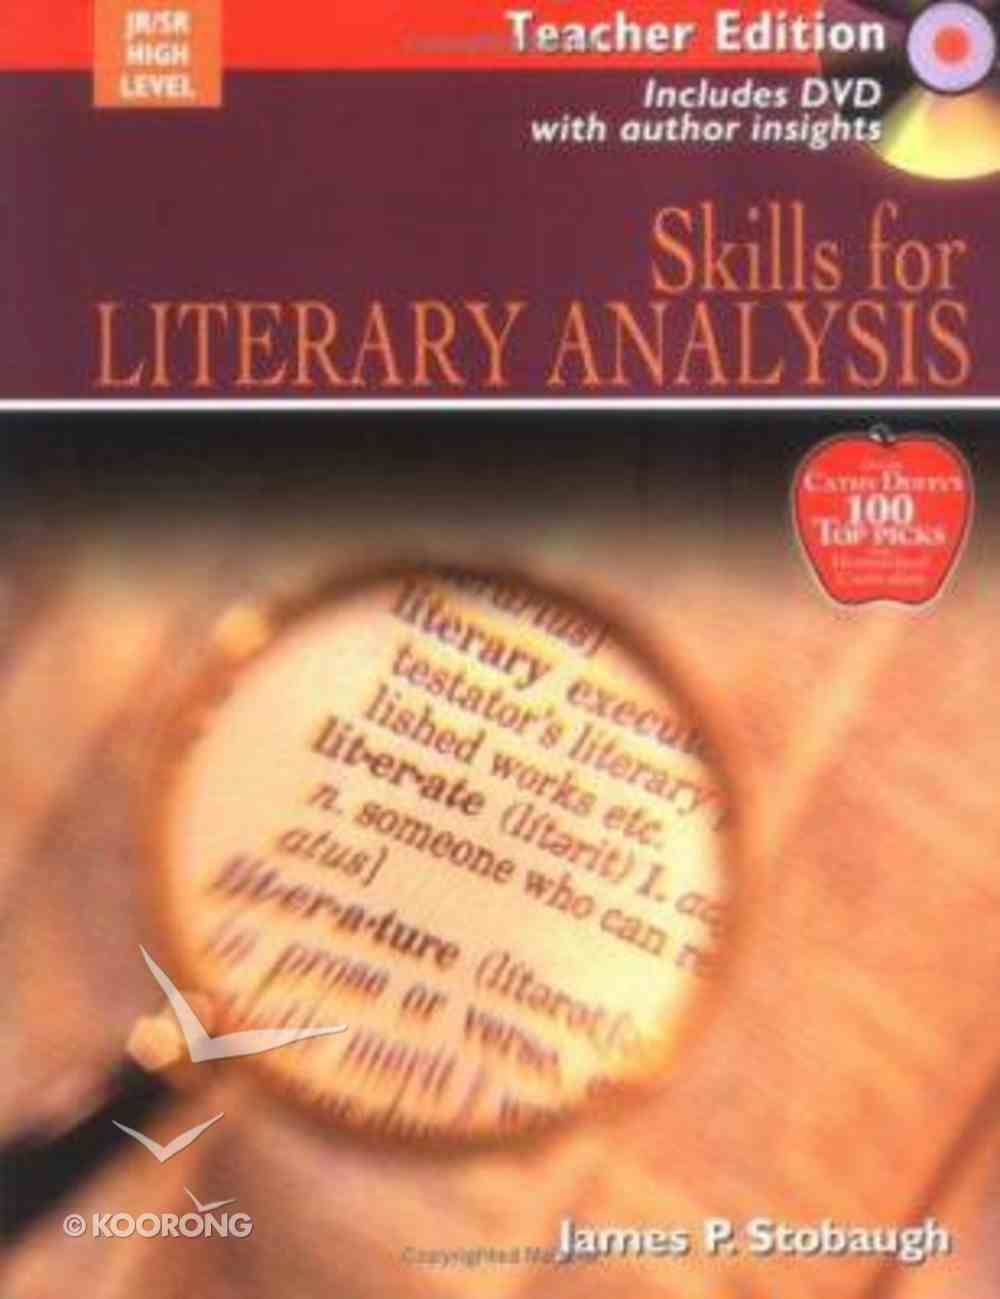 Skills For Literary Analysis Teacher Edition (Junior/senor High Level) Paperback